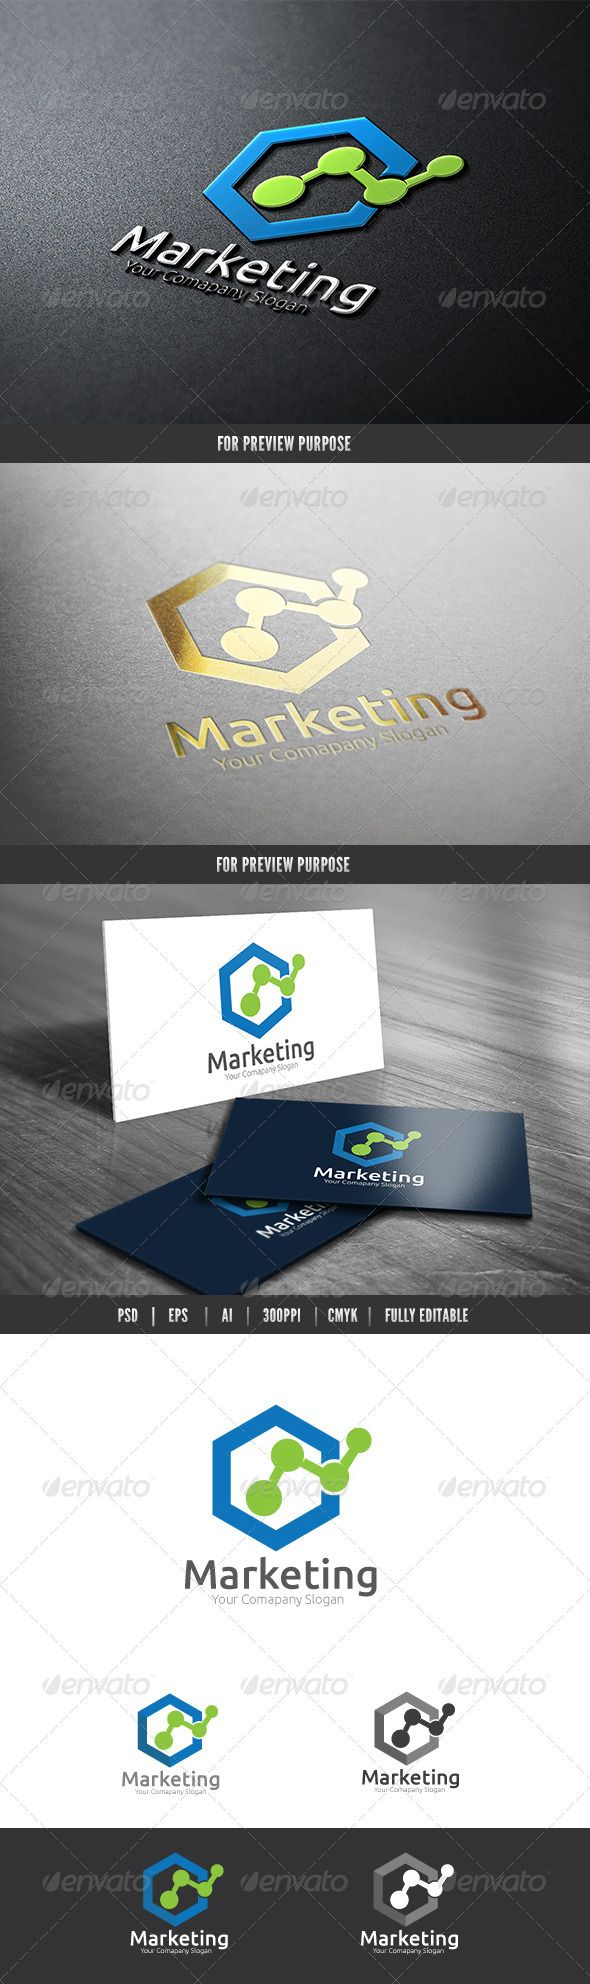 Marketing — Photoshop PSD #atom #school • Available here → https://graphicriver.net/item/marketing/6797505?ref=pxcr